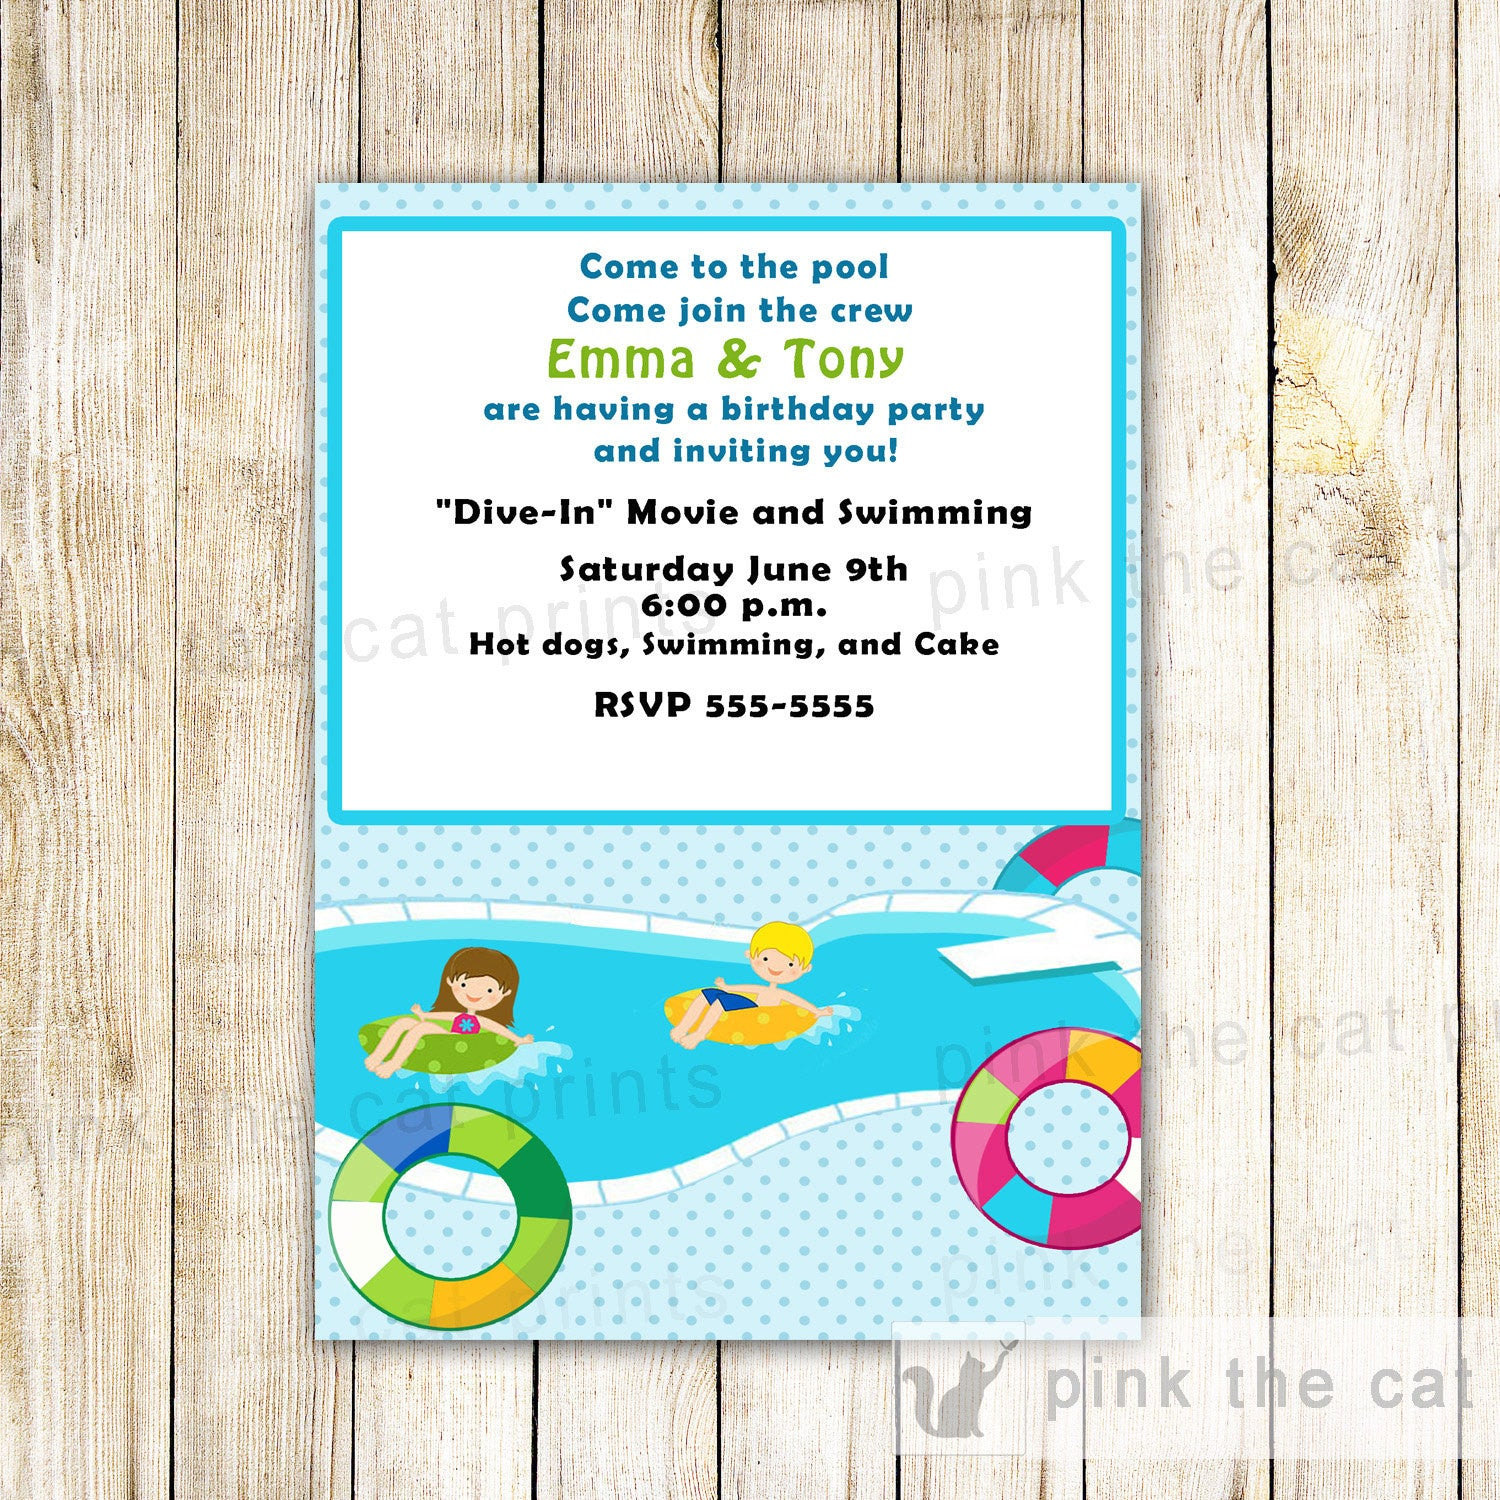 Pool Invitation Card Kids Birthday Summer Party – Pink The Cat